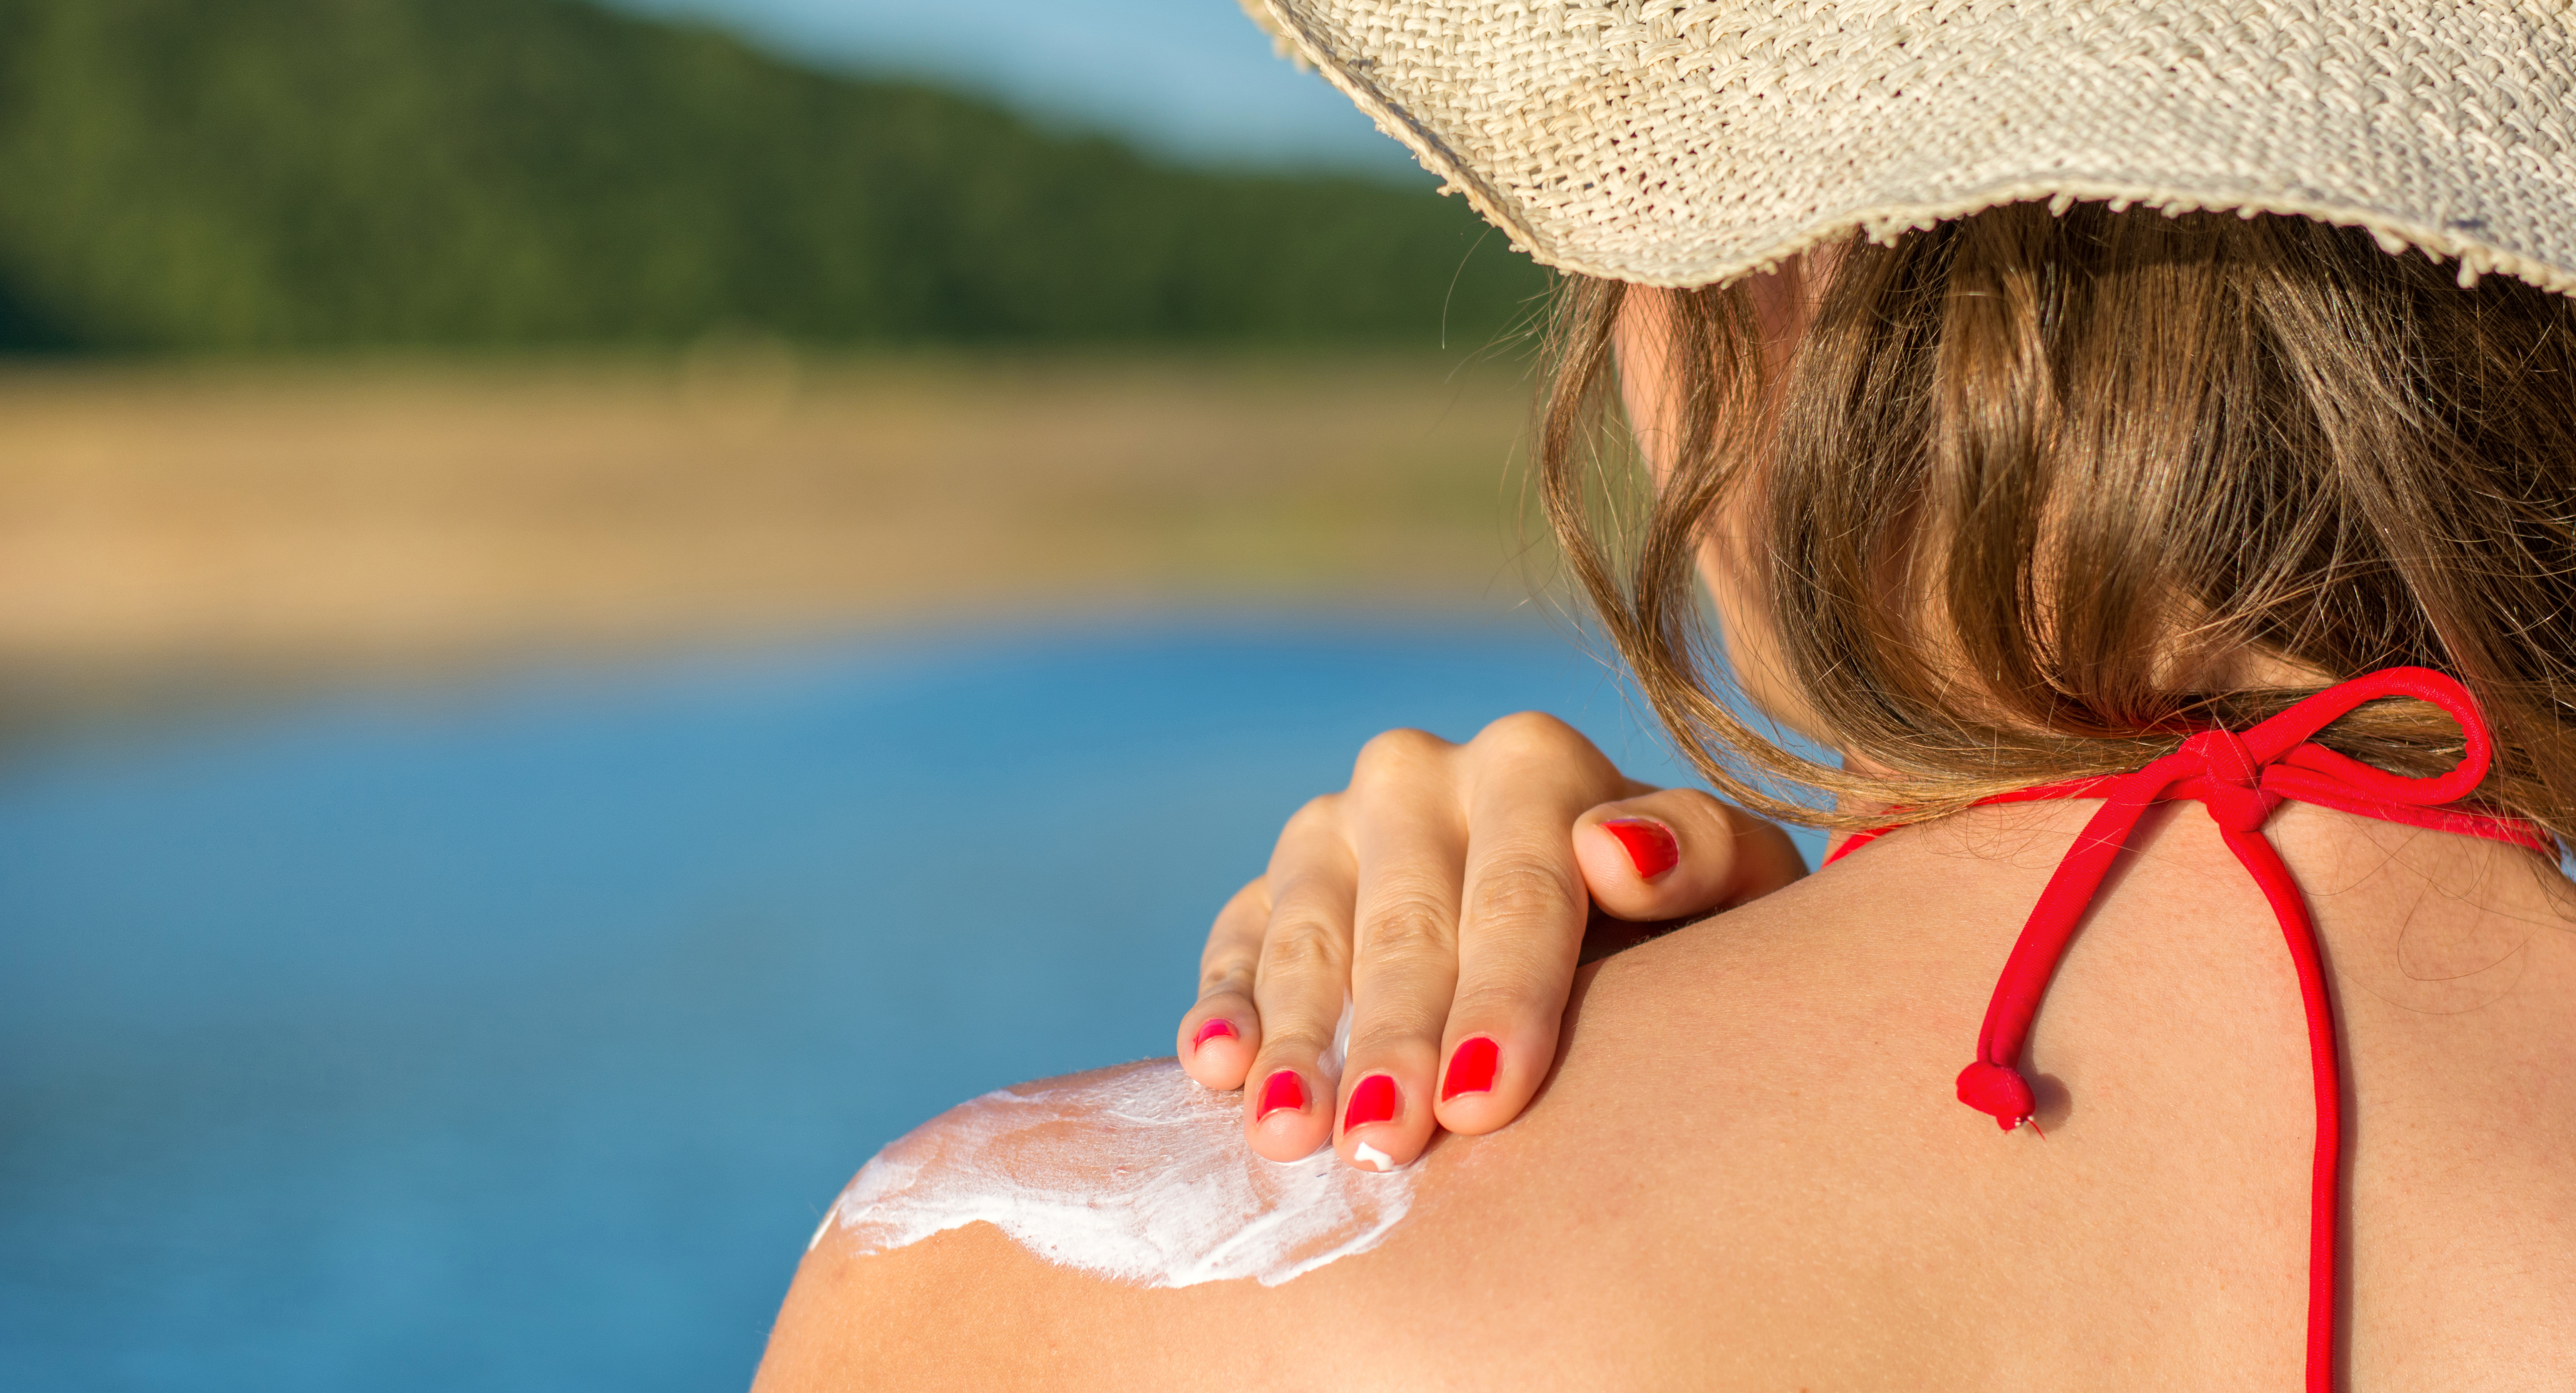 Young woman applying sun lotion on summer vacation